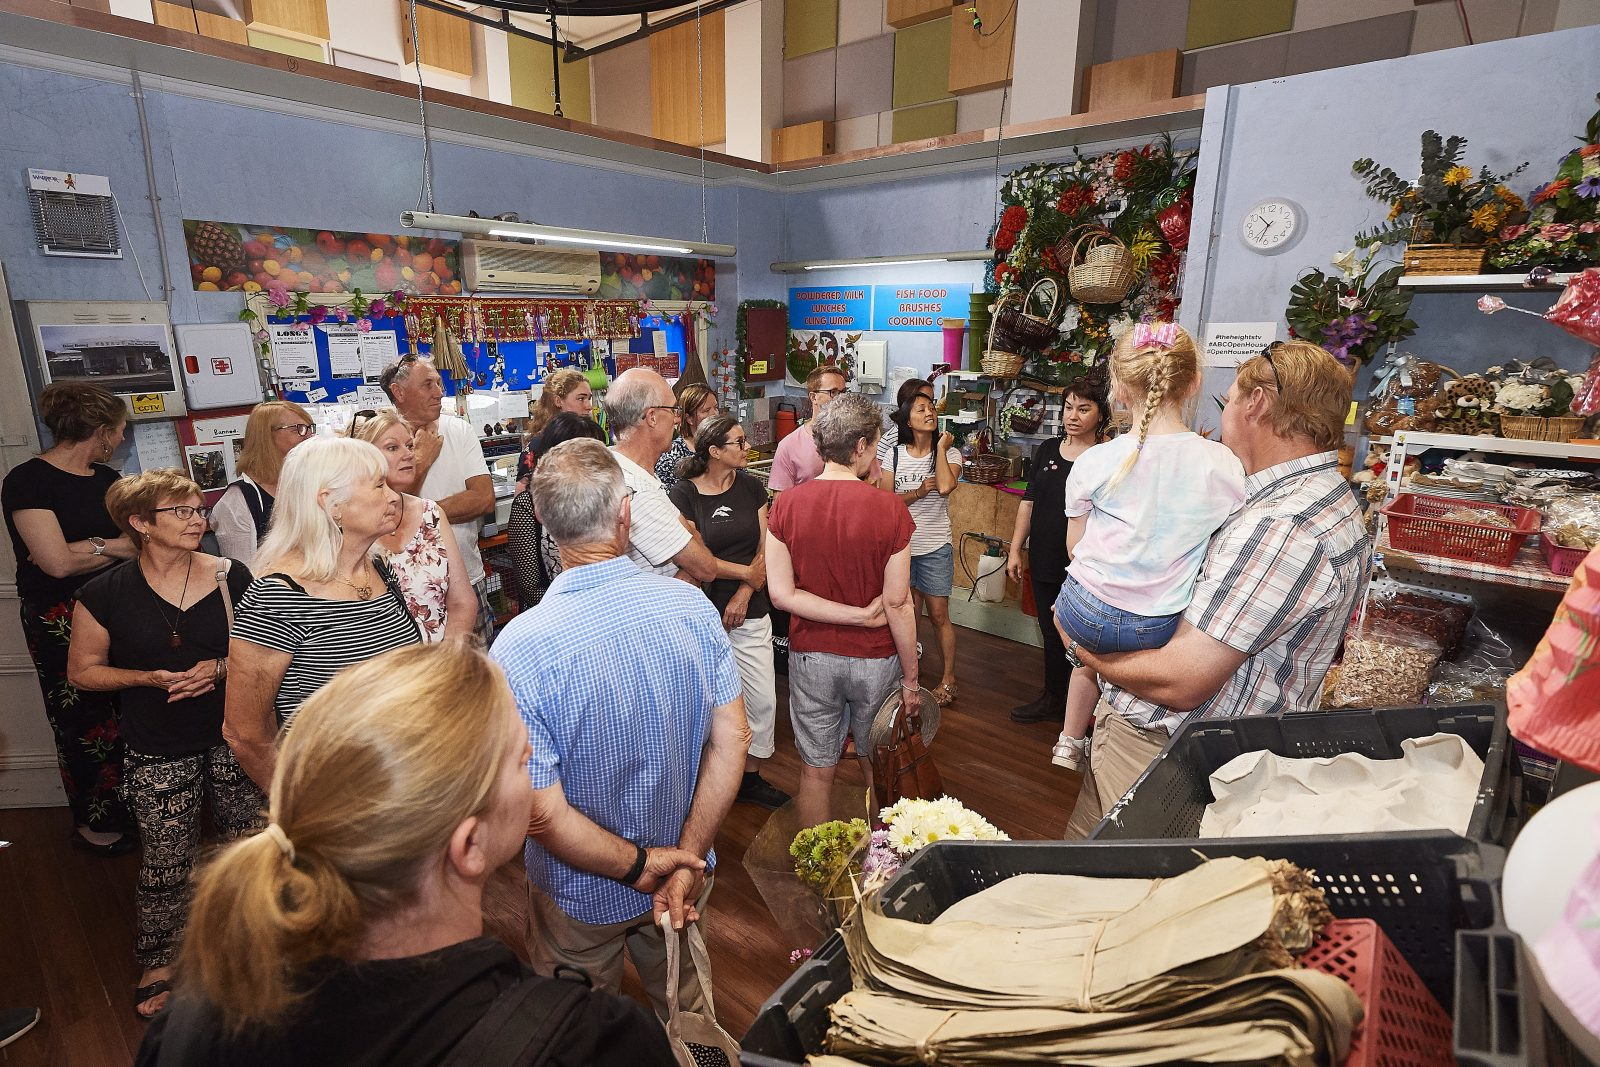 ABC Perth Open House, East Perth of the 16wth November 2019. Photo: (c) Daniel Carson | dcimges.org